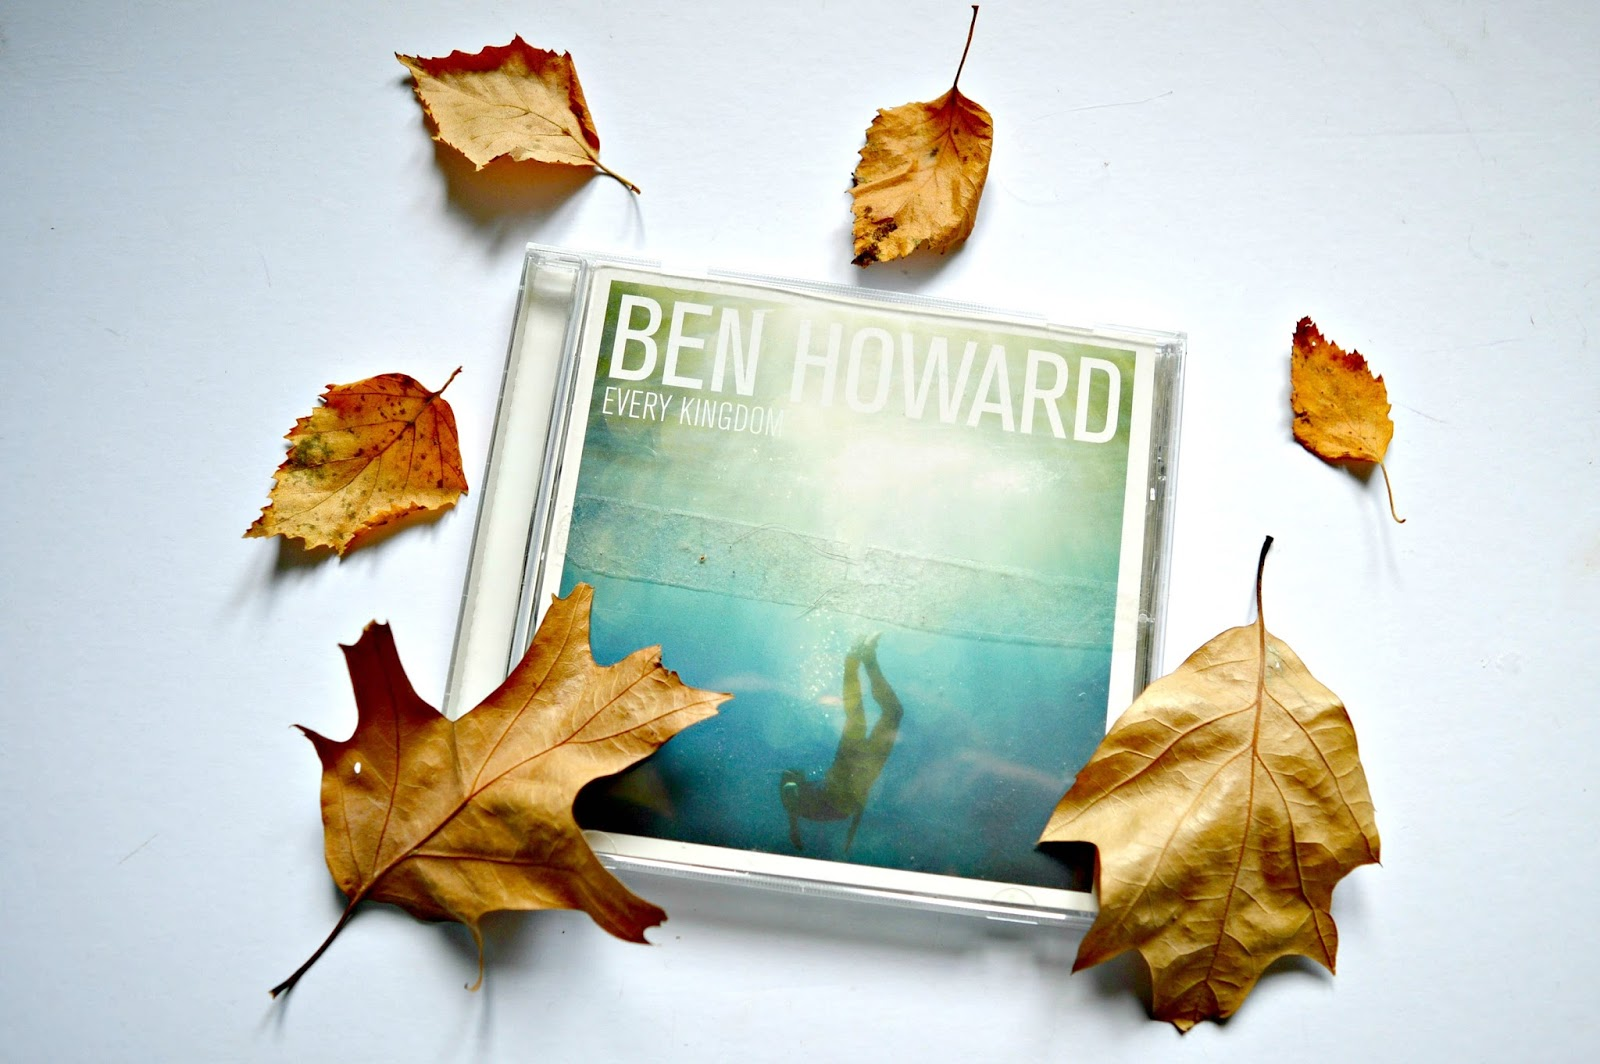 ben howard every kingdom